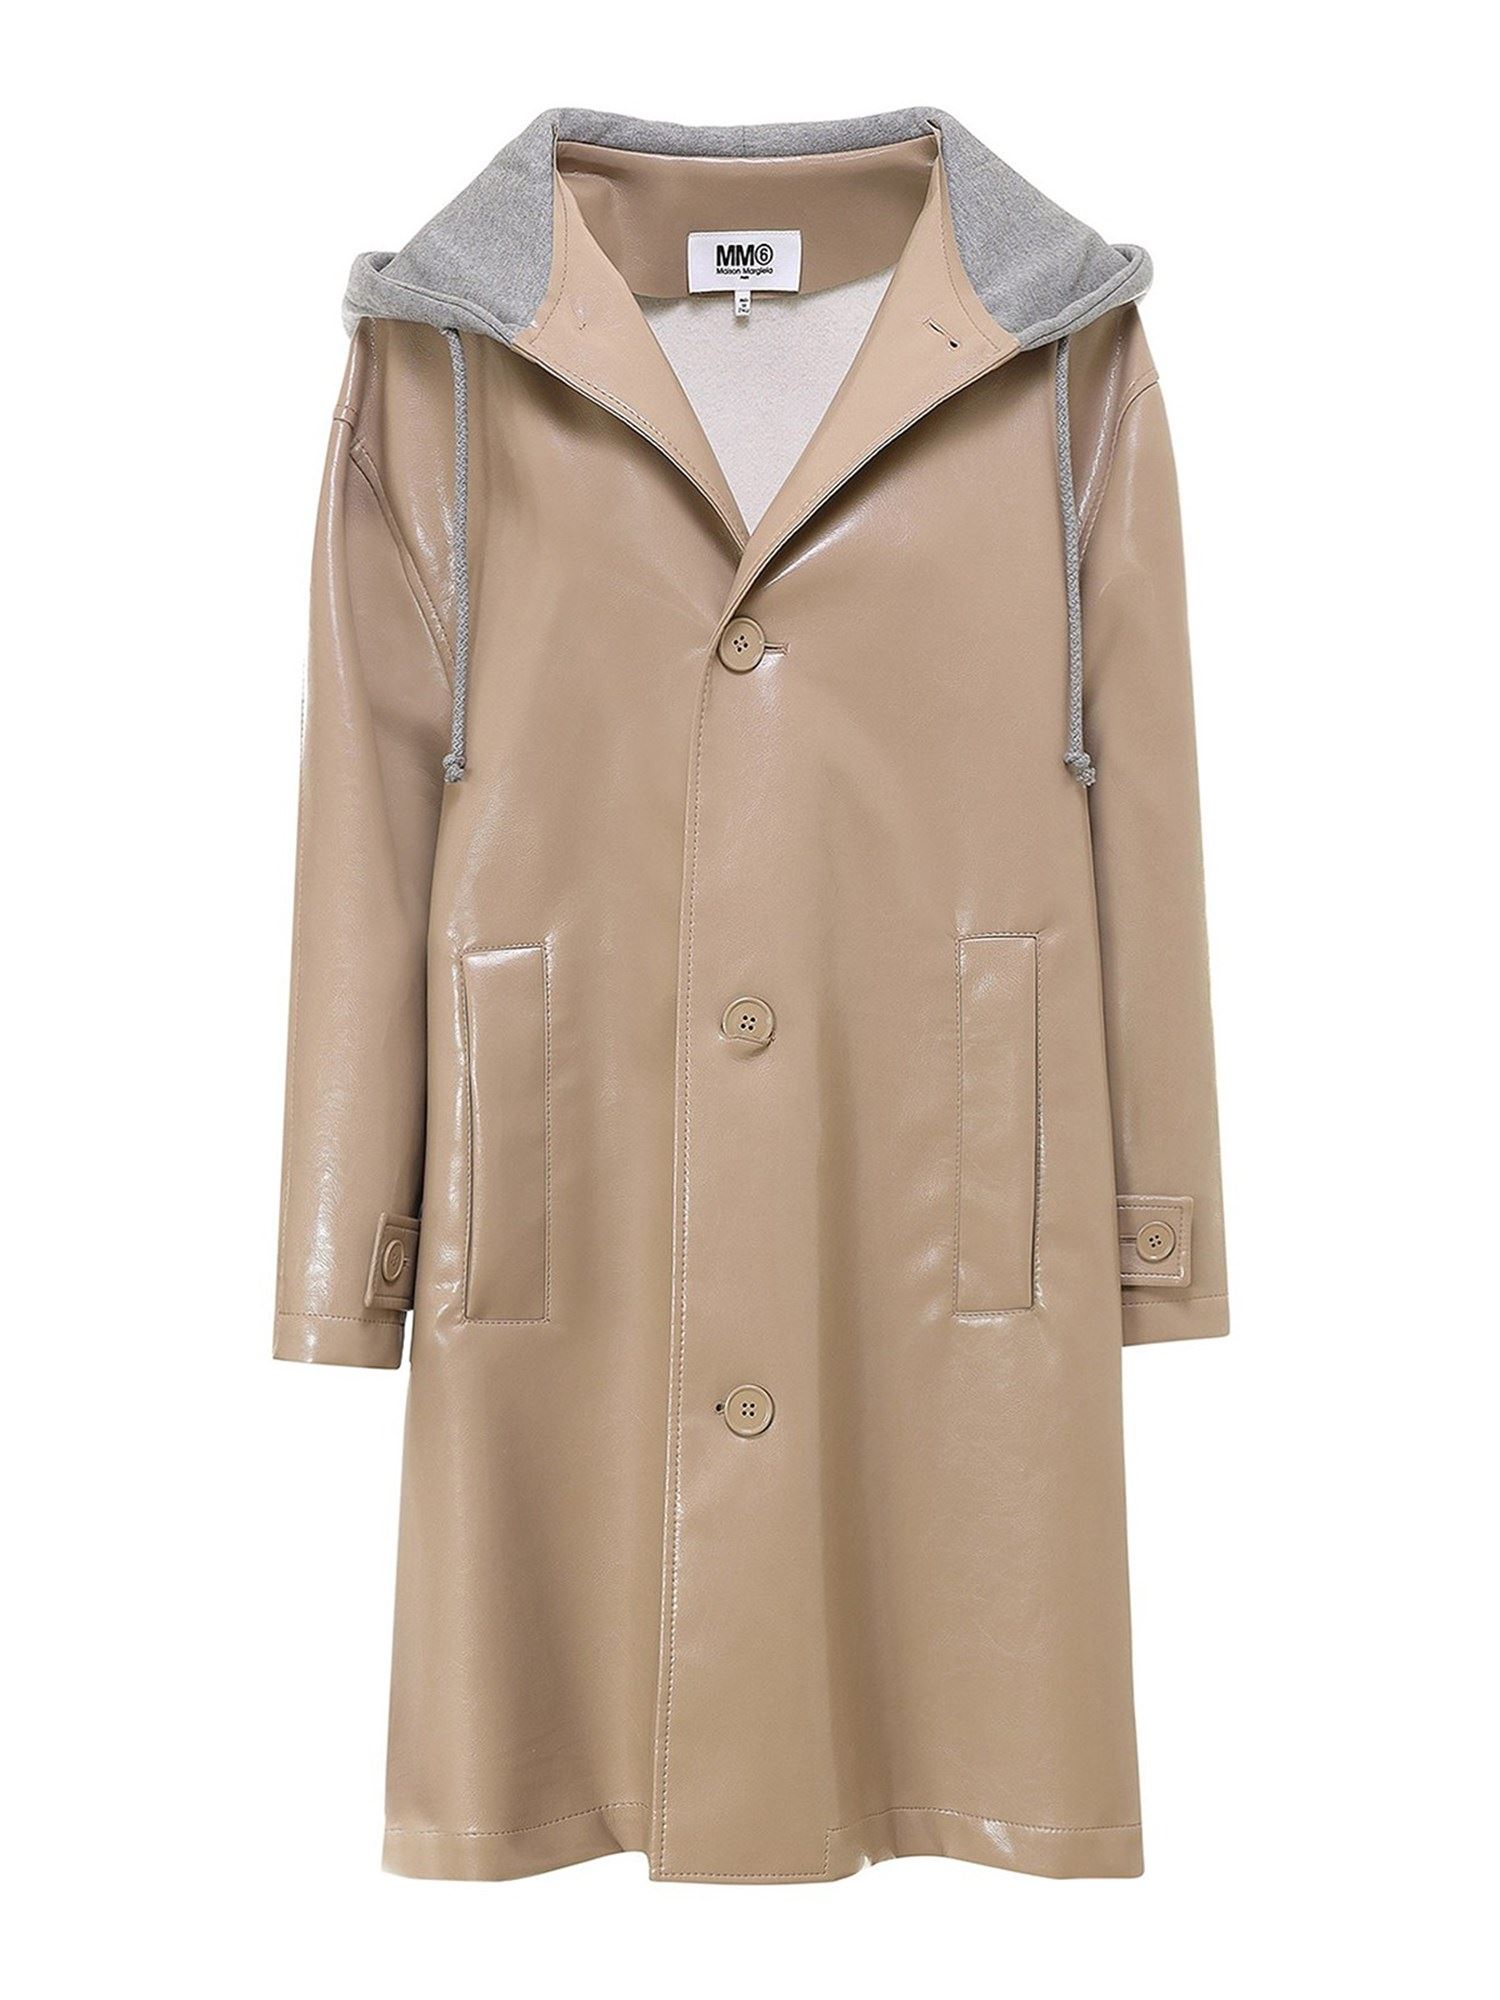 MM6 MAISON MARGIELA DOUBLE FABRIC HOODED TRENCH COAT IN BEIGE